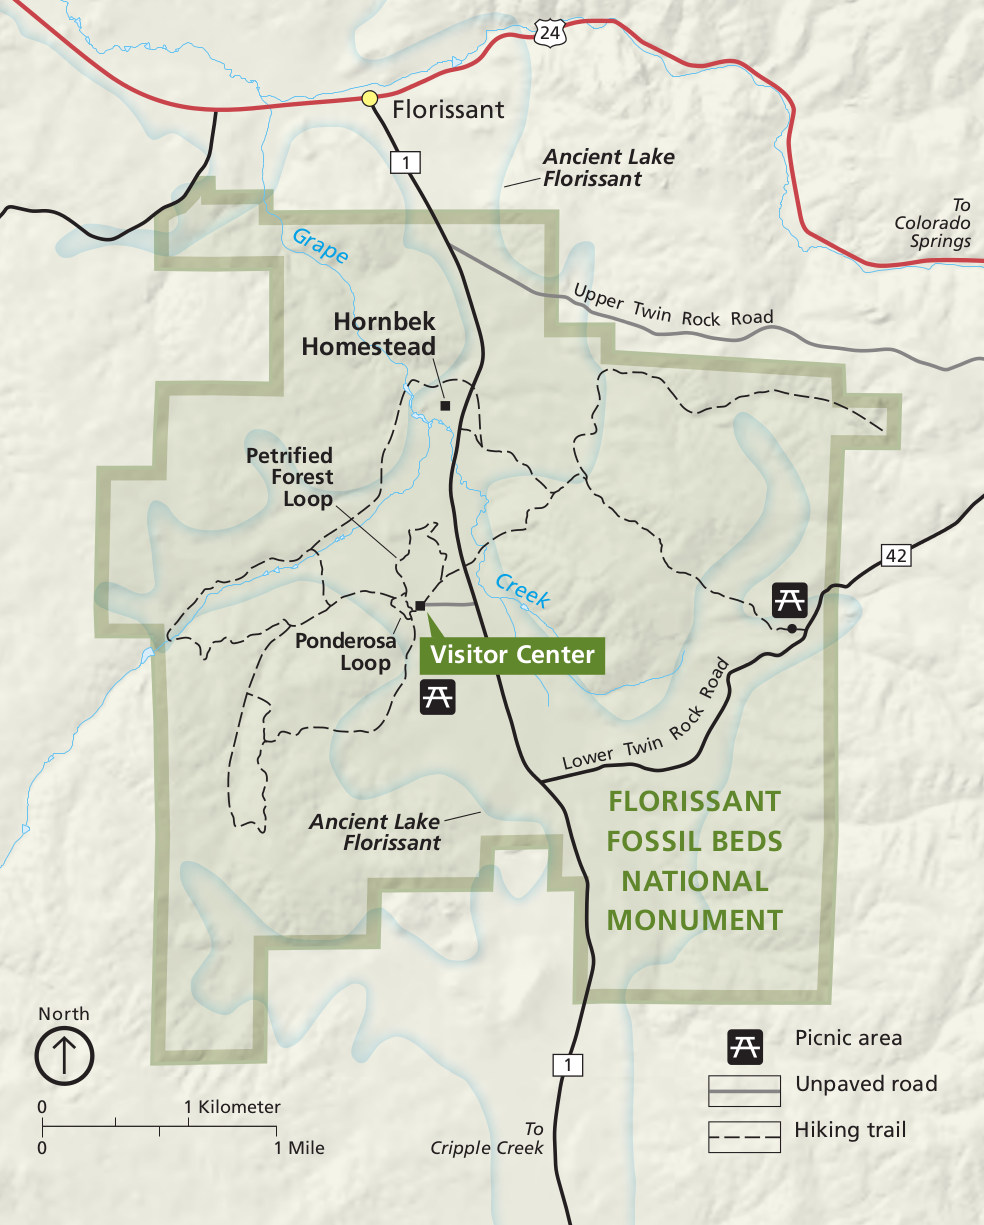 Colorado National Park Trail Maps - Feral Mountain Company